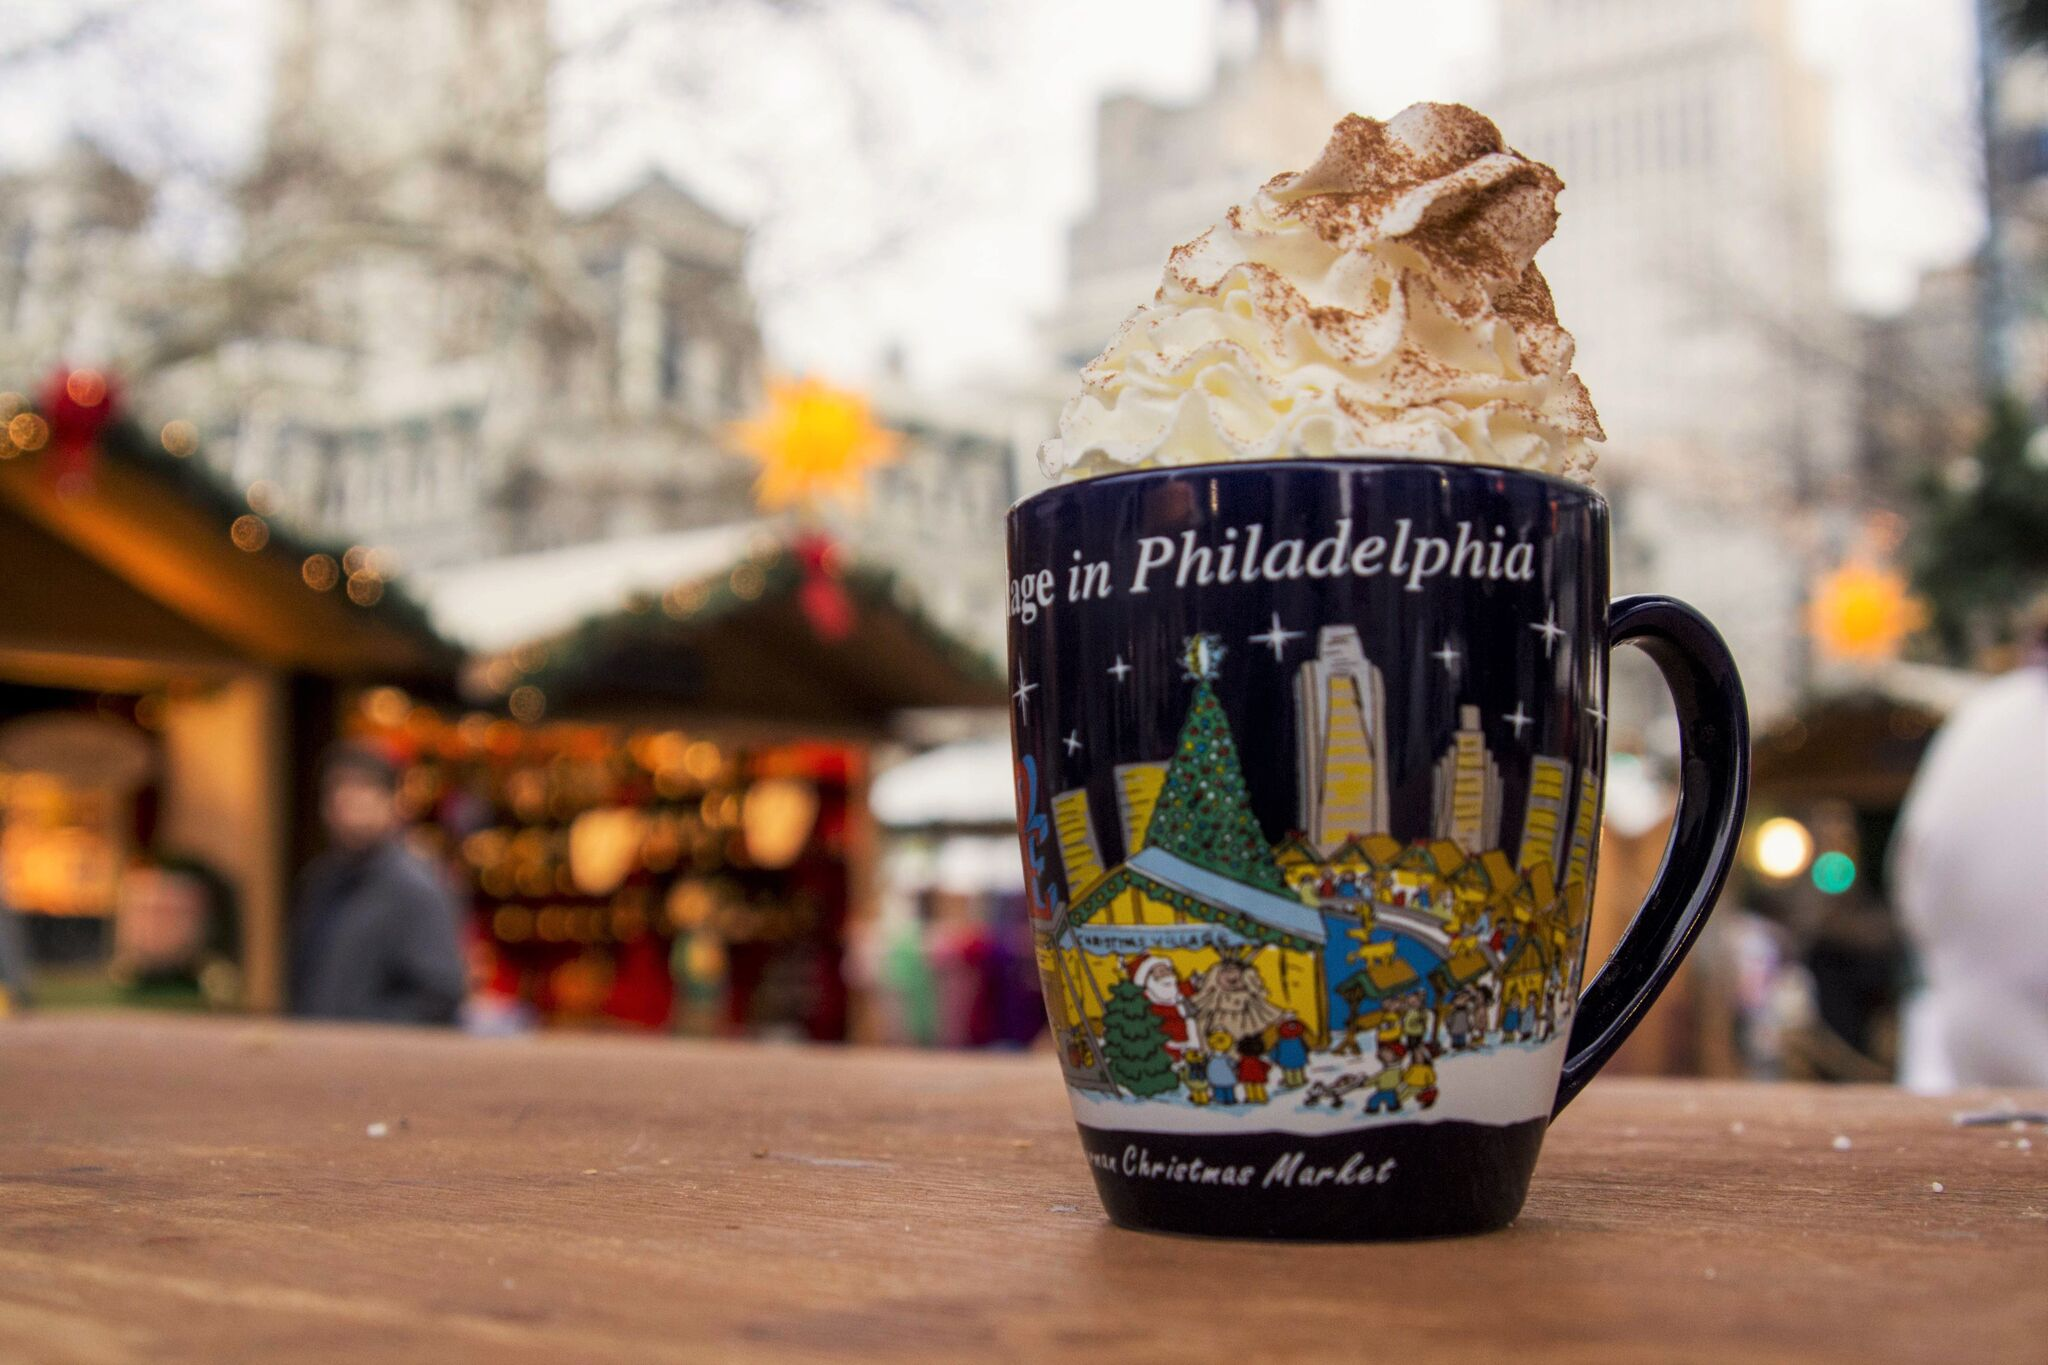 Christmas Village in Philadelphia Mug of Hot Coco